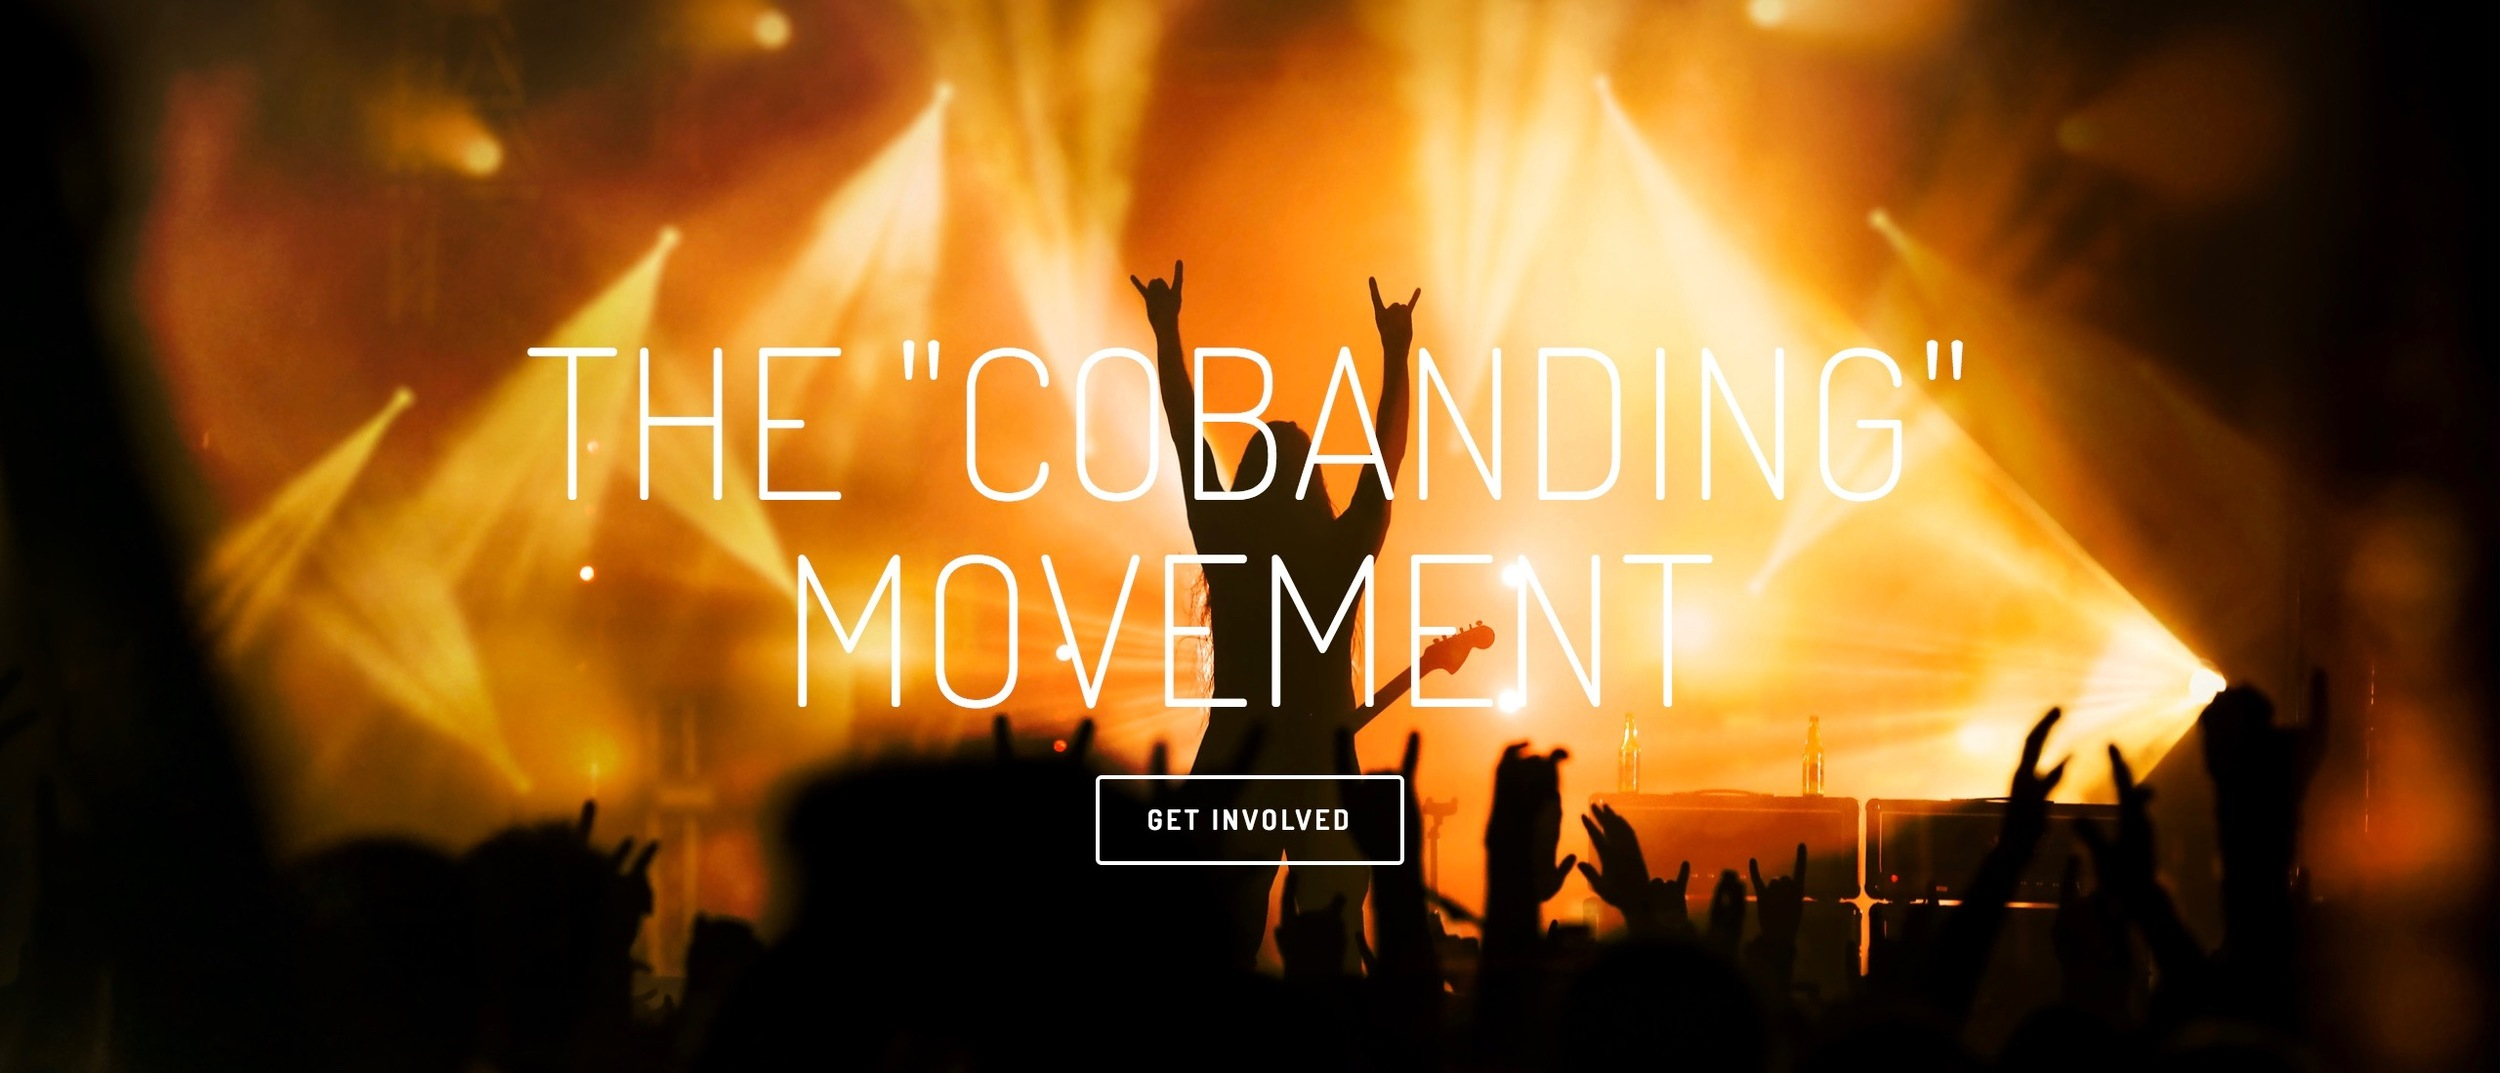 Cobanding.org is a not for profit movement any expenses incurred are paid for by generous donations by the Cobanding community.